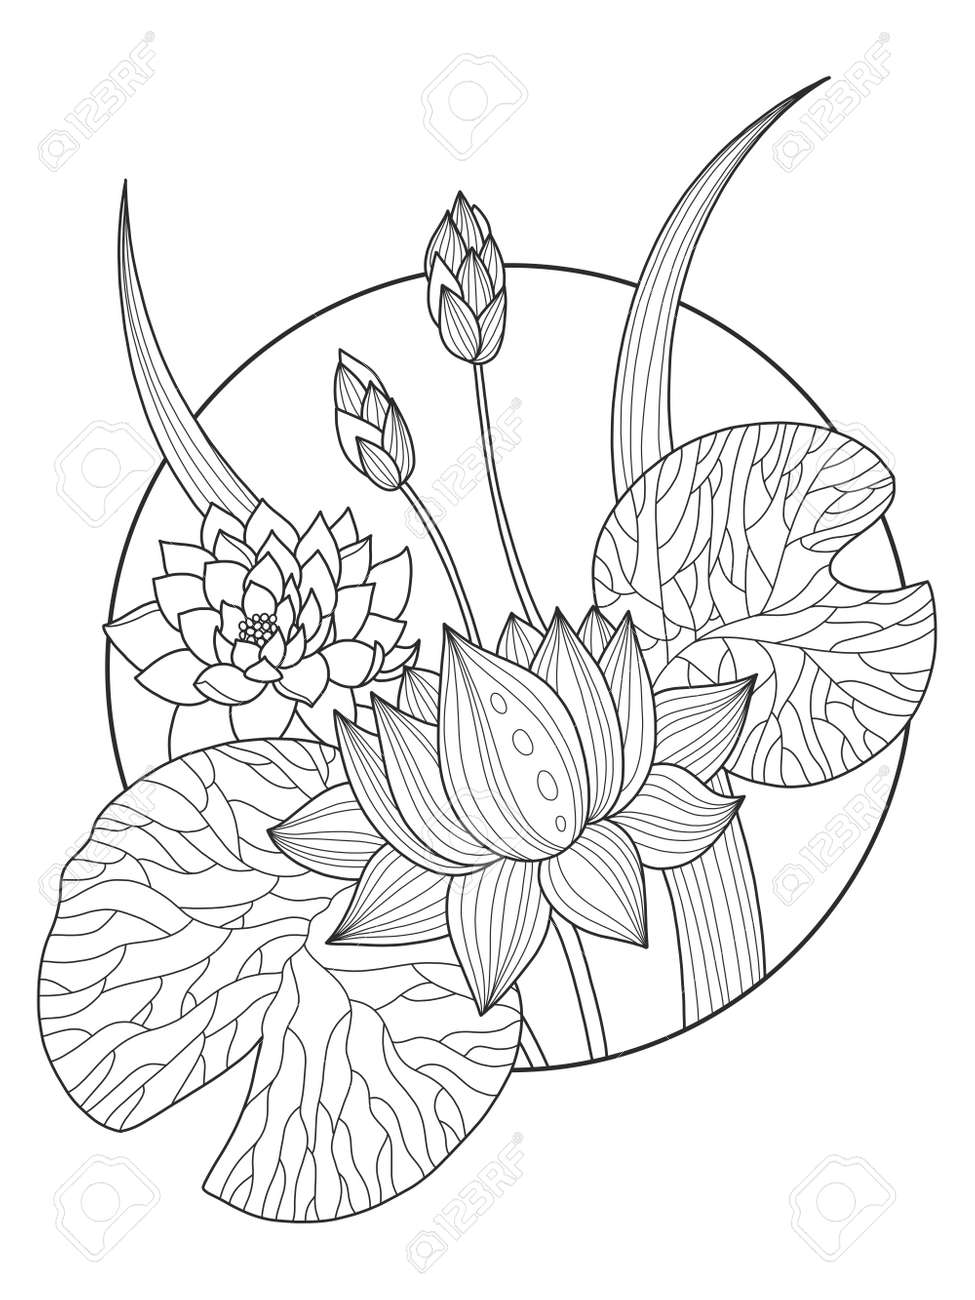 Lotus Flower Coloring Book Vector Illustration Royalty Free Cliparts